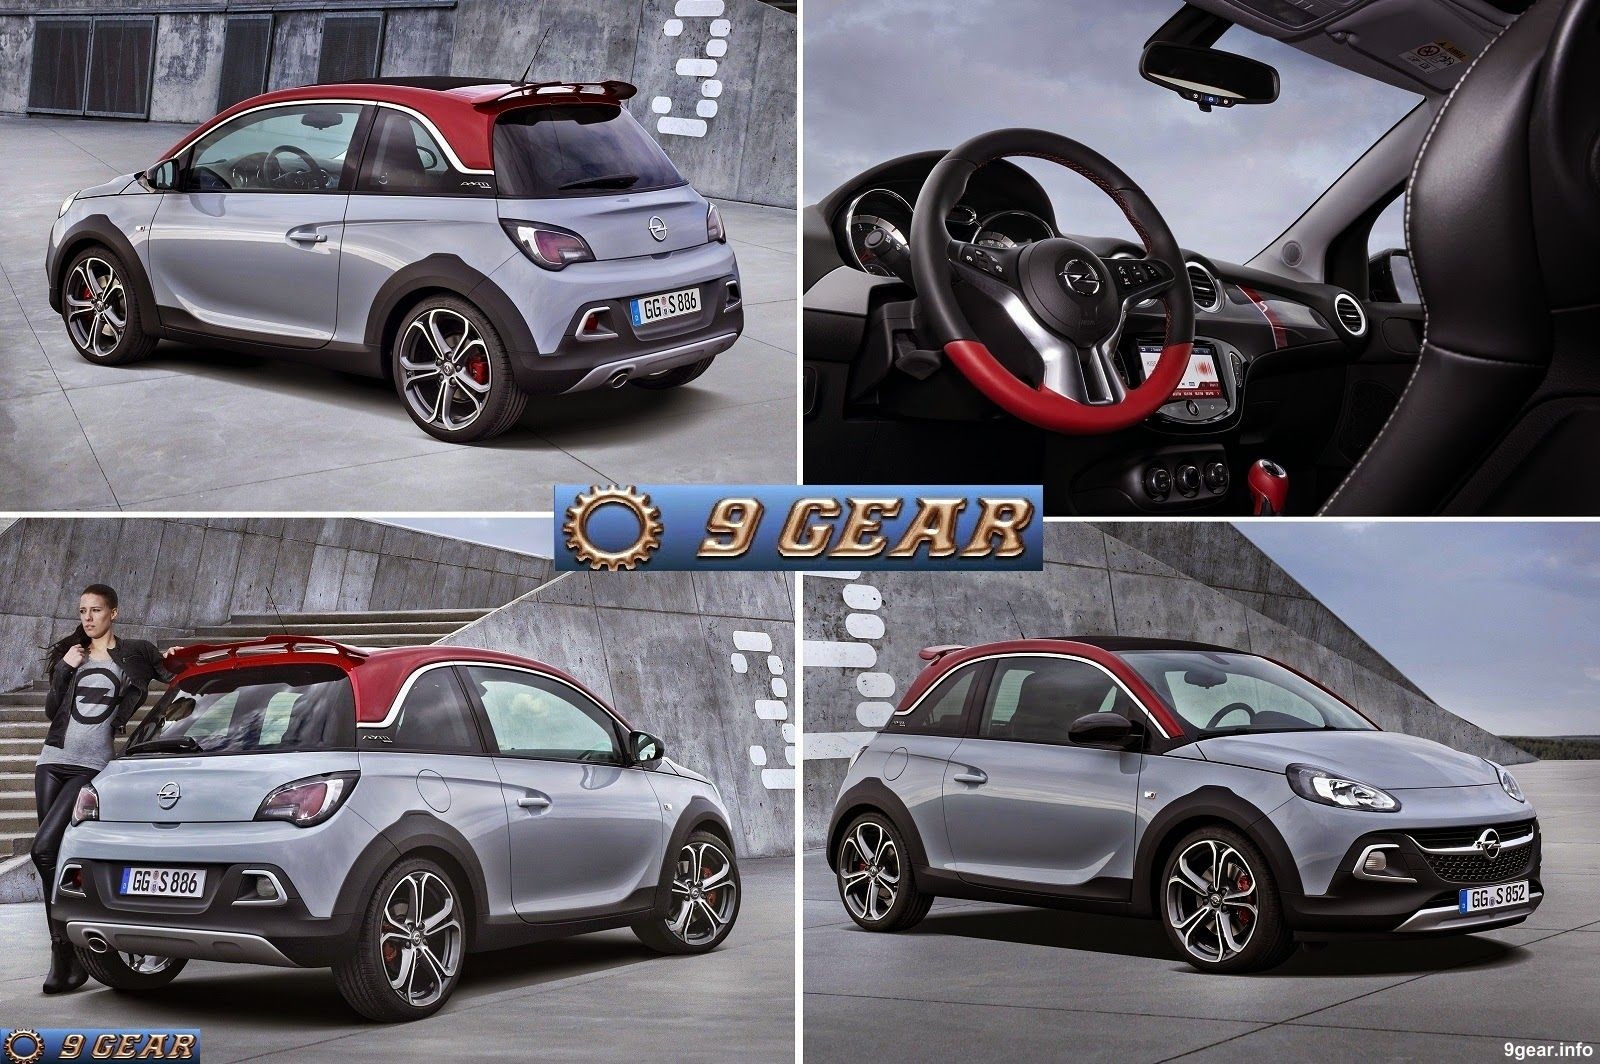 76 The Best 2020 Opel Adam Rocks Specs